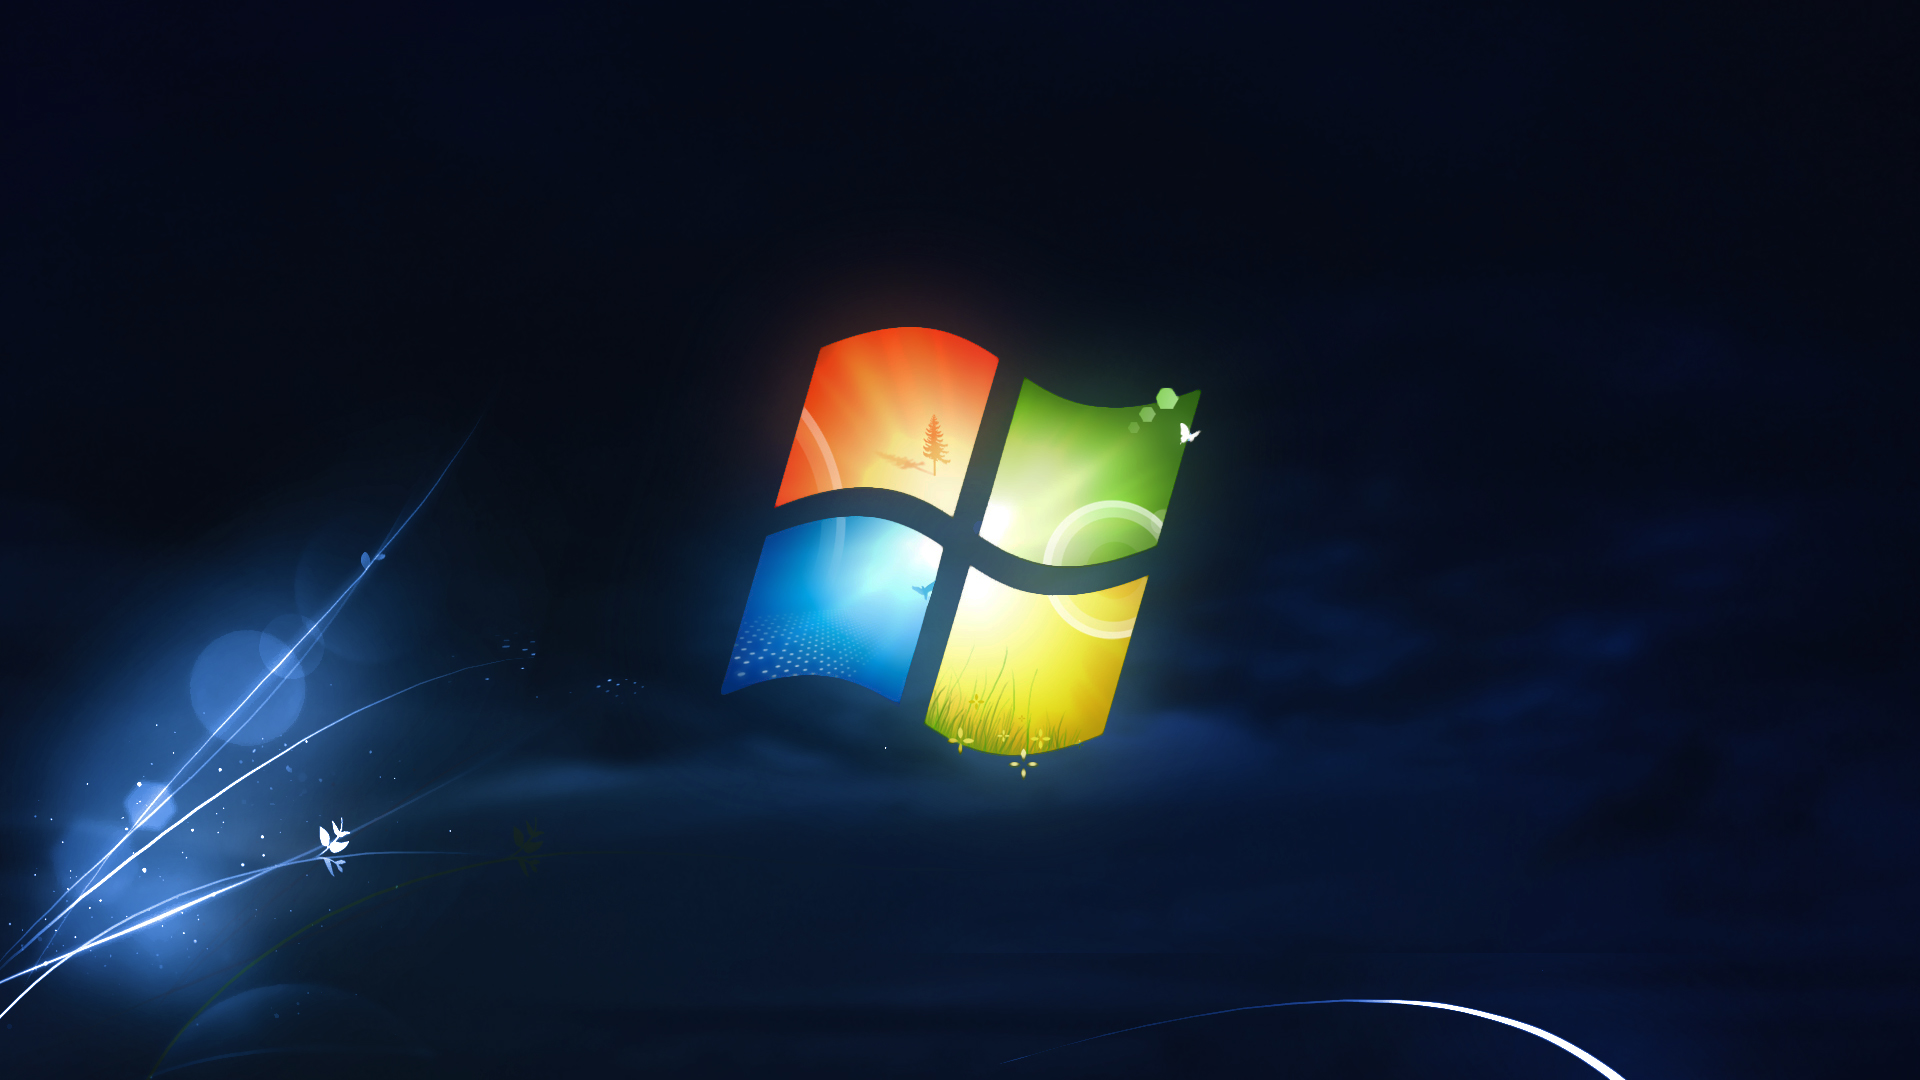 Microsoft Windows  HD Desktop Wallpapers Amazing Wallpaperz 1920x1080